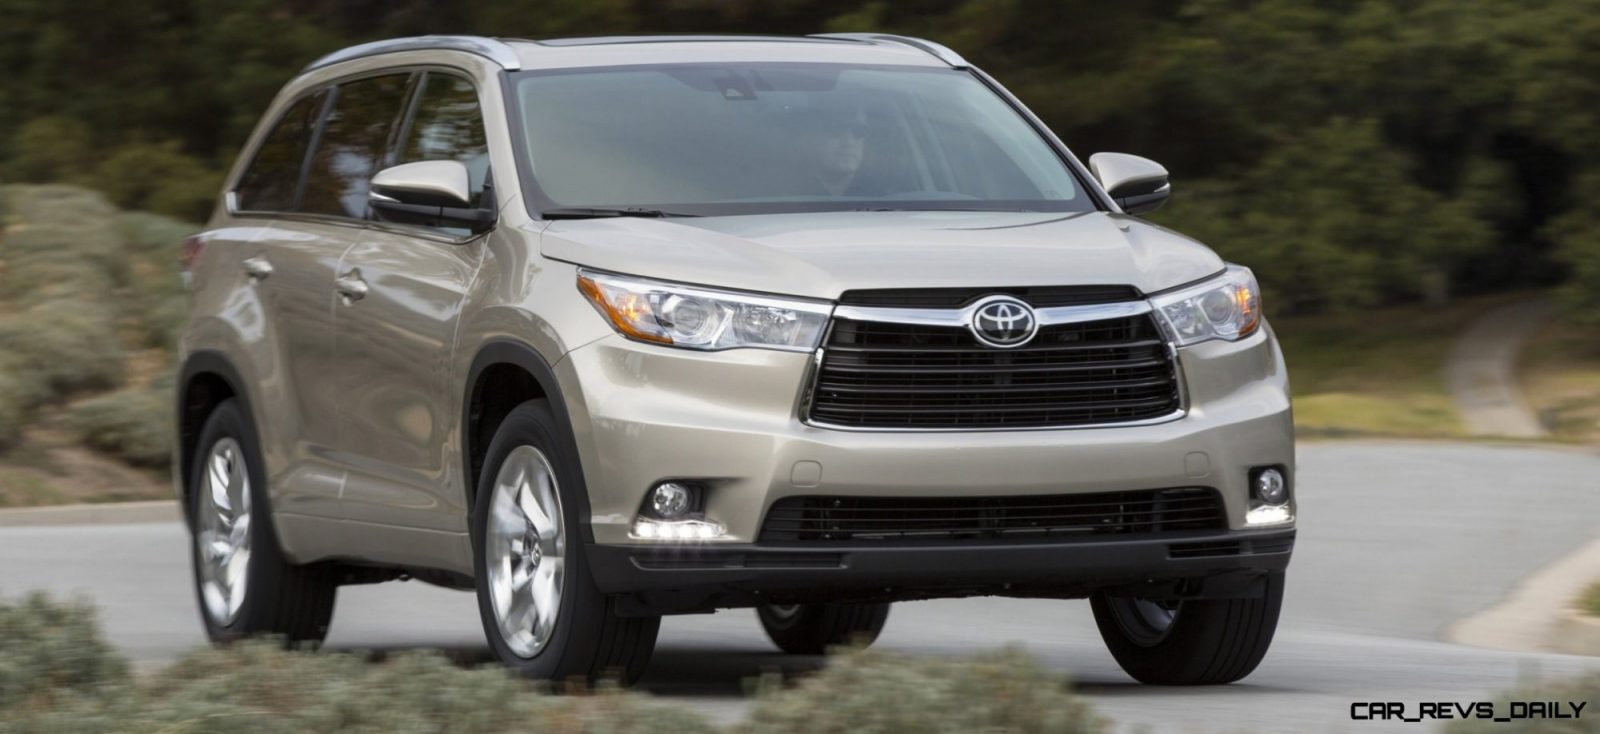 Buyers guide to the 2014 toyota highlander with specs pricing and 88 photos for 2013 toyota highlander exterior colors